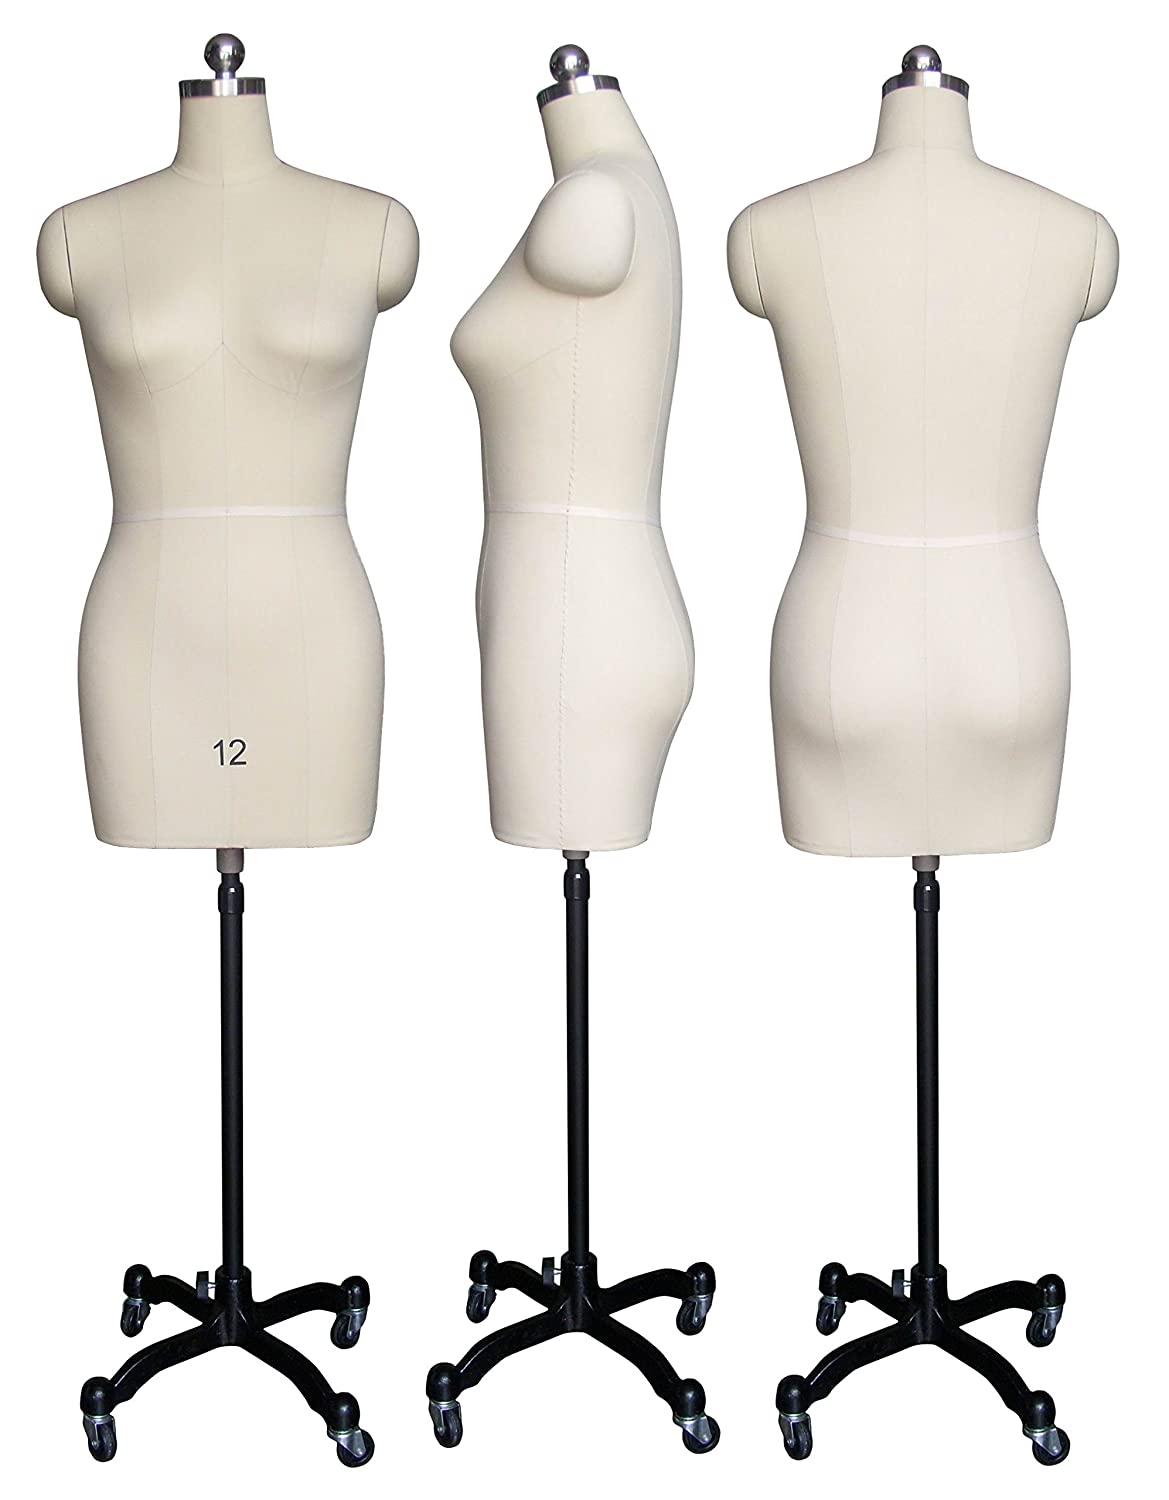 Female Sewing Dress Form Mannequin Fully Pinnable With Magnetic Removable Shoulders On Rolling Base Size 12 by Only Mannequins®